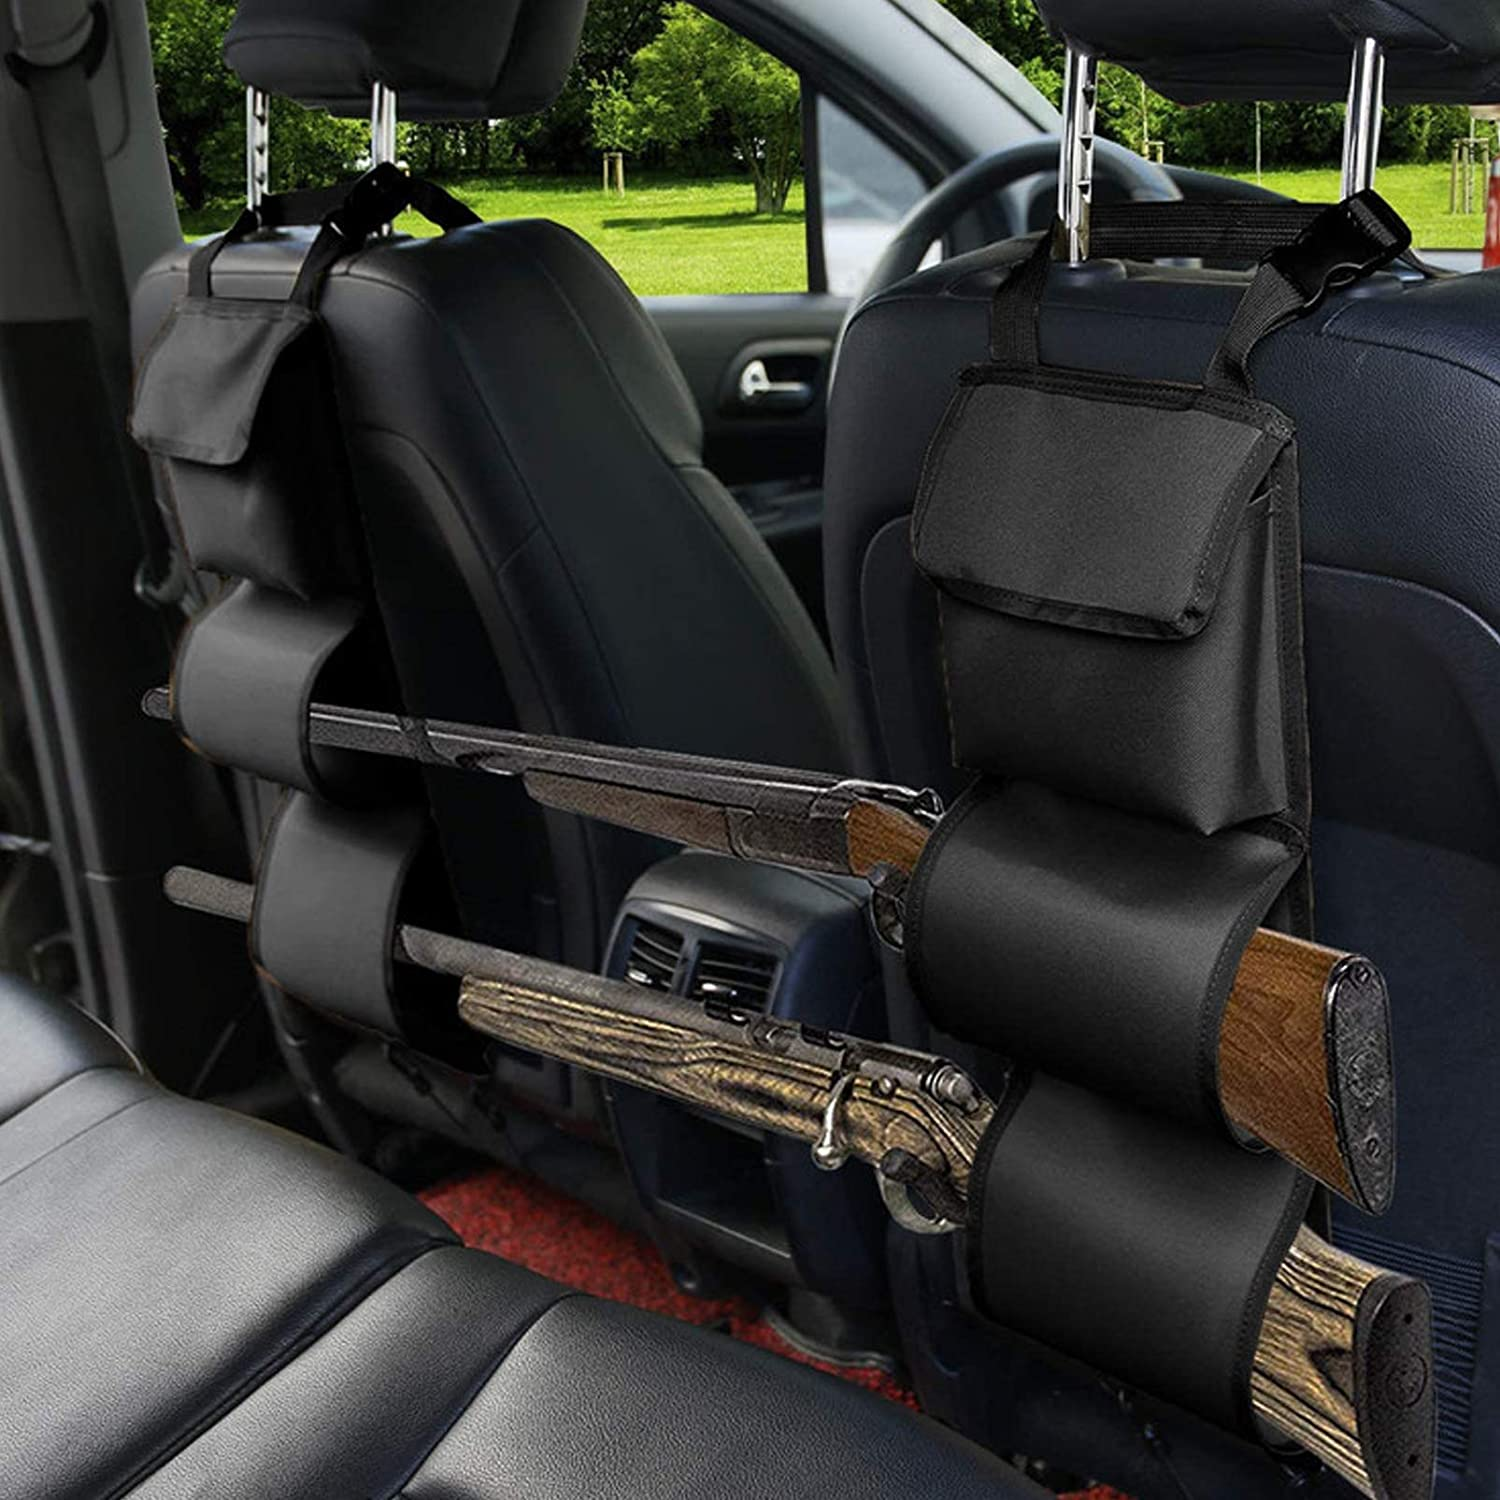 Price reduction Selling N \ A Car Seat Rack Automotive Back Concealed Gun